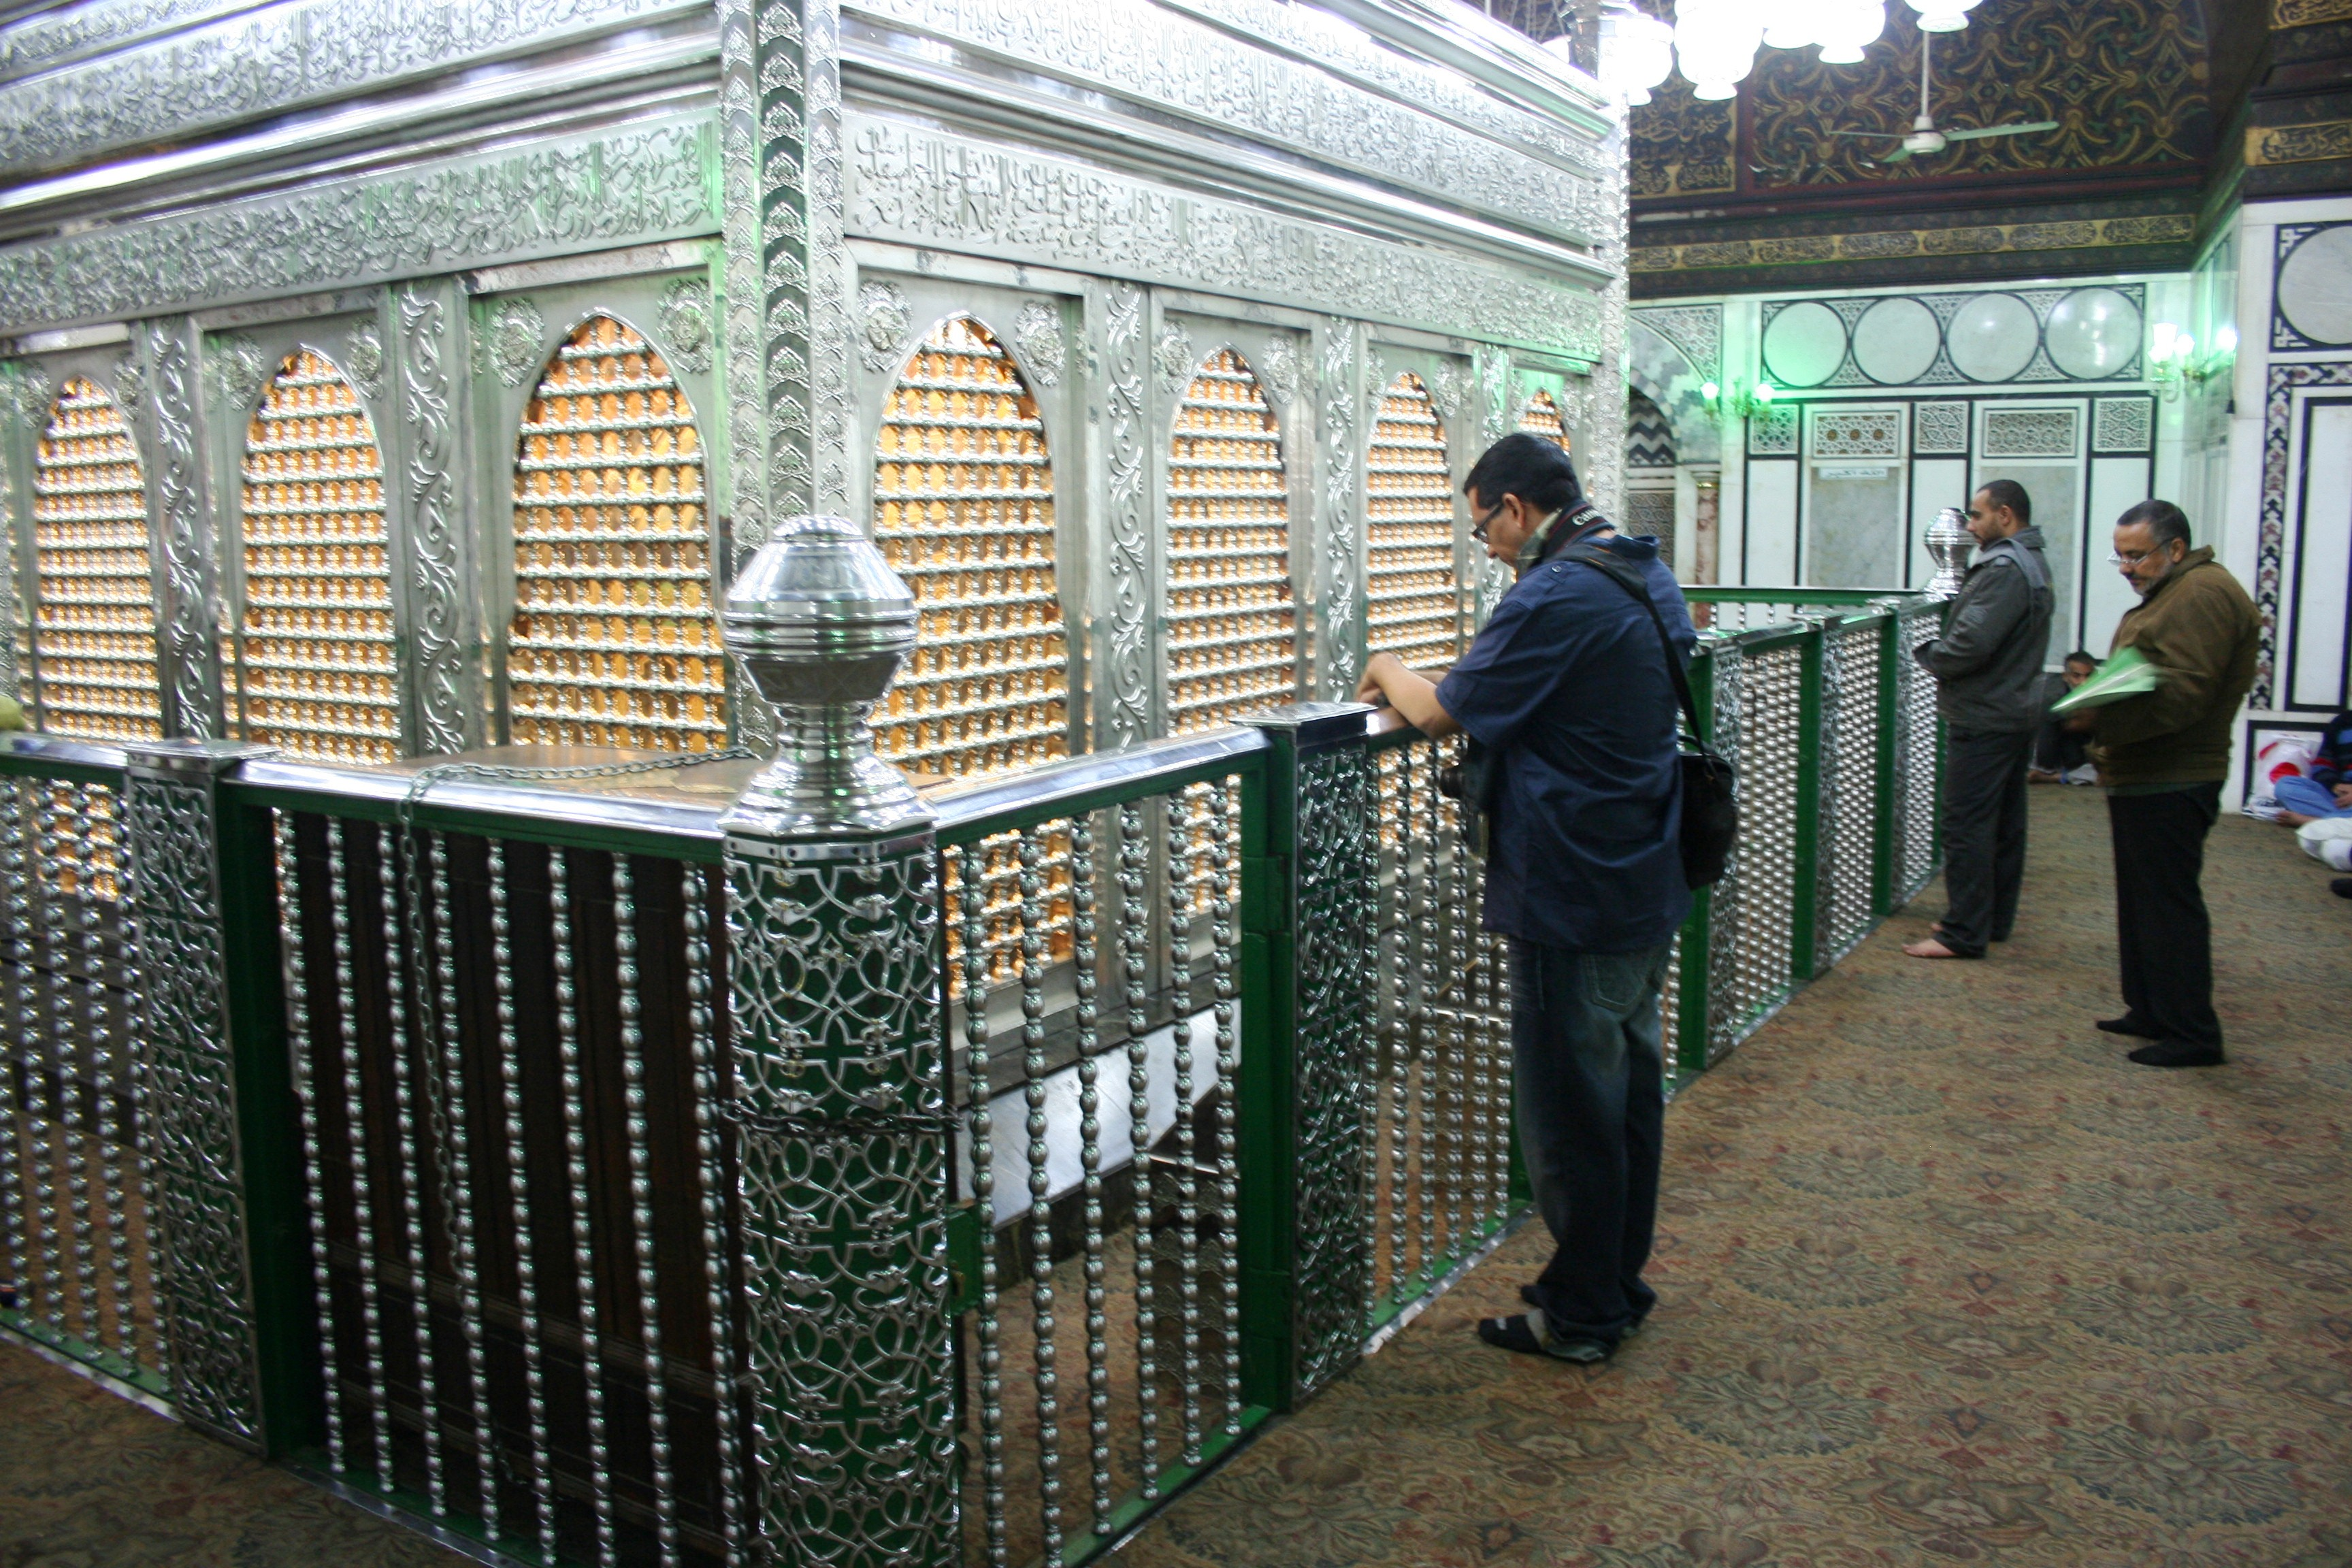 Sanctuary of Al-Hussein Mosque